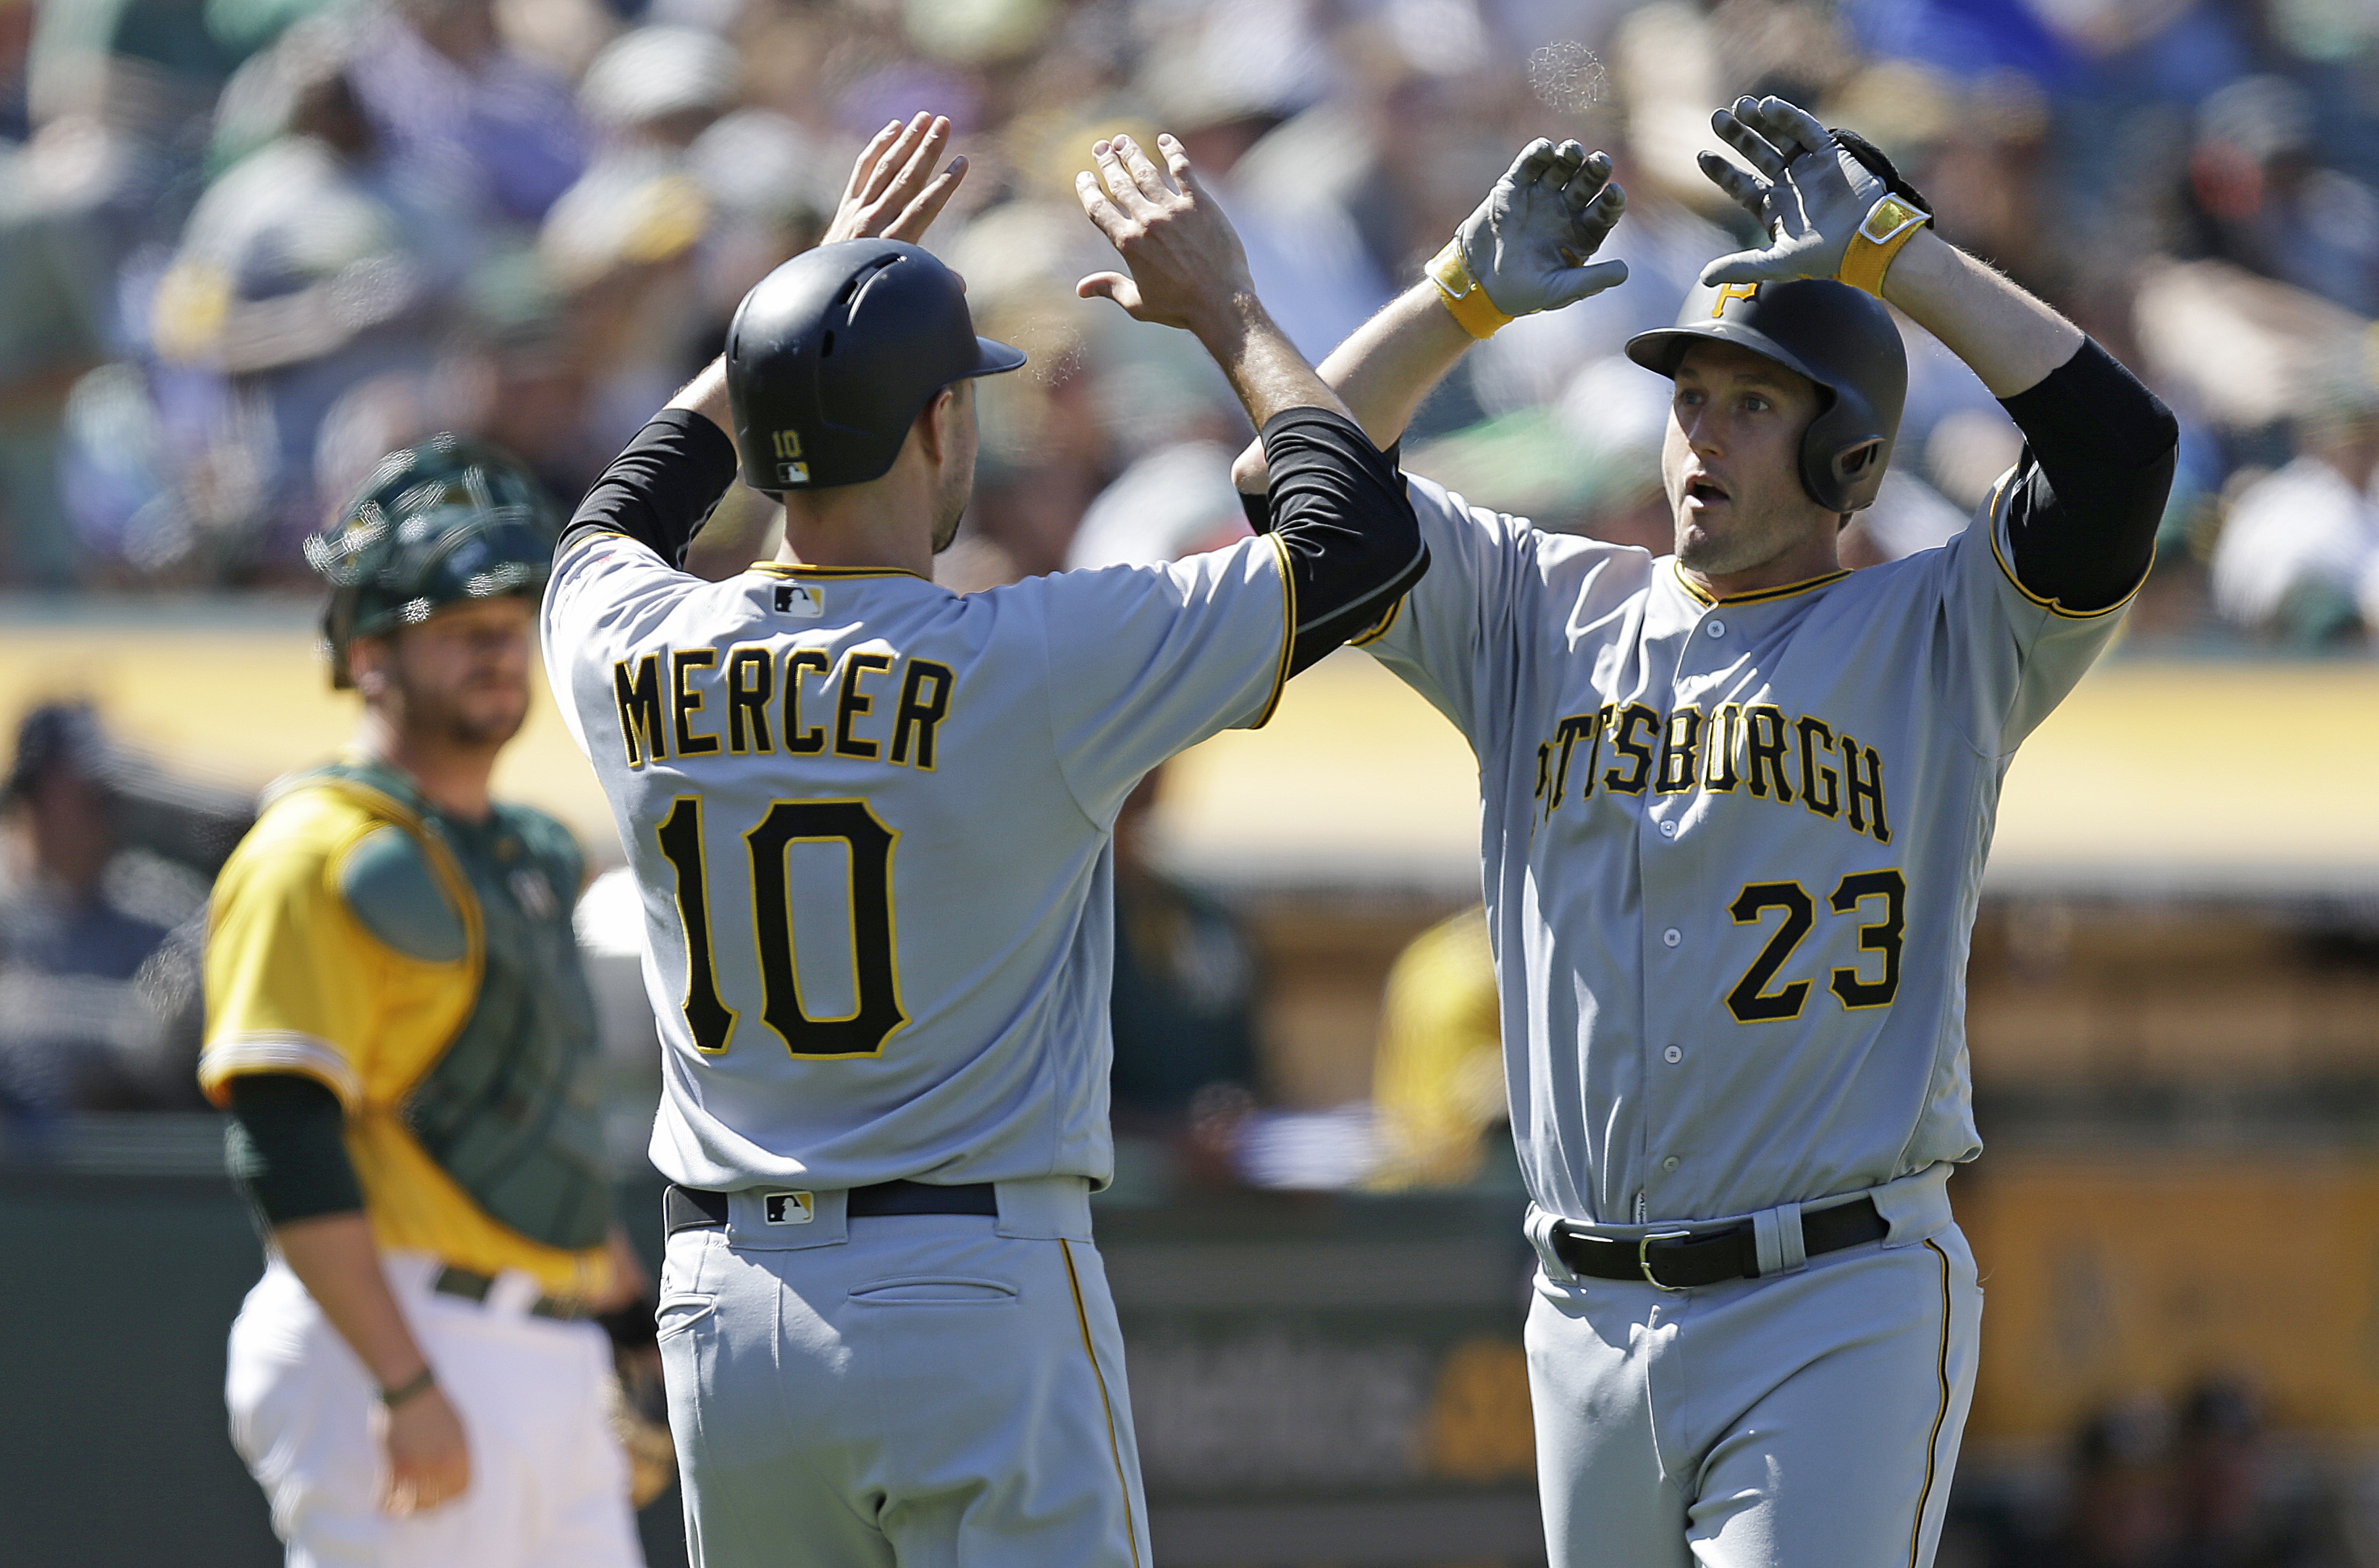 Pittsburgh Pirates' David Freese, right, celebrates with Jordy Mercer (10) after hitting a two-run home run off Oakland Athletics' John Axford in the eighth inning of a baseball game Sunday, July 3, 2016, in Oakland, Calif. (AP Photo/Ben Margot)